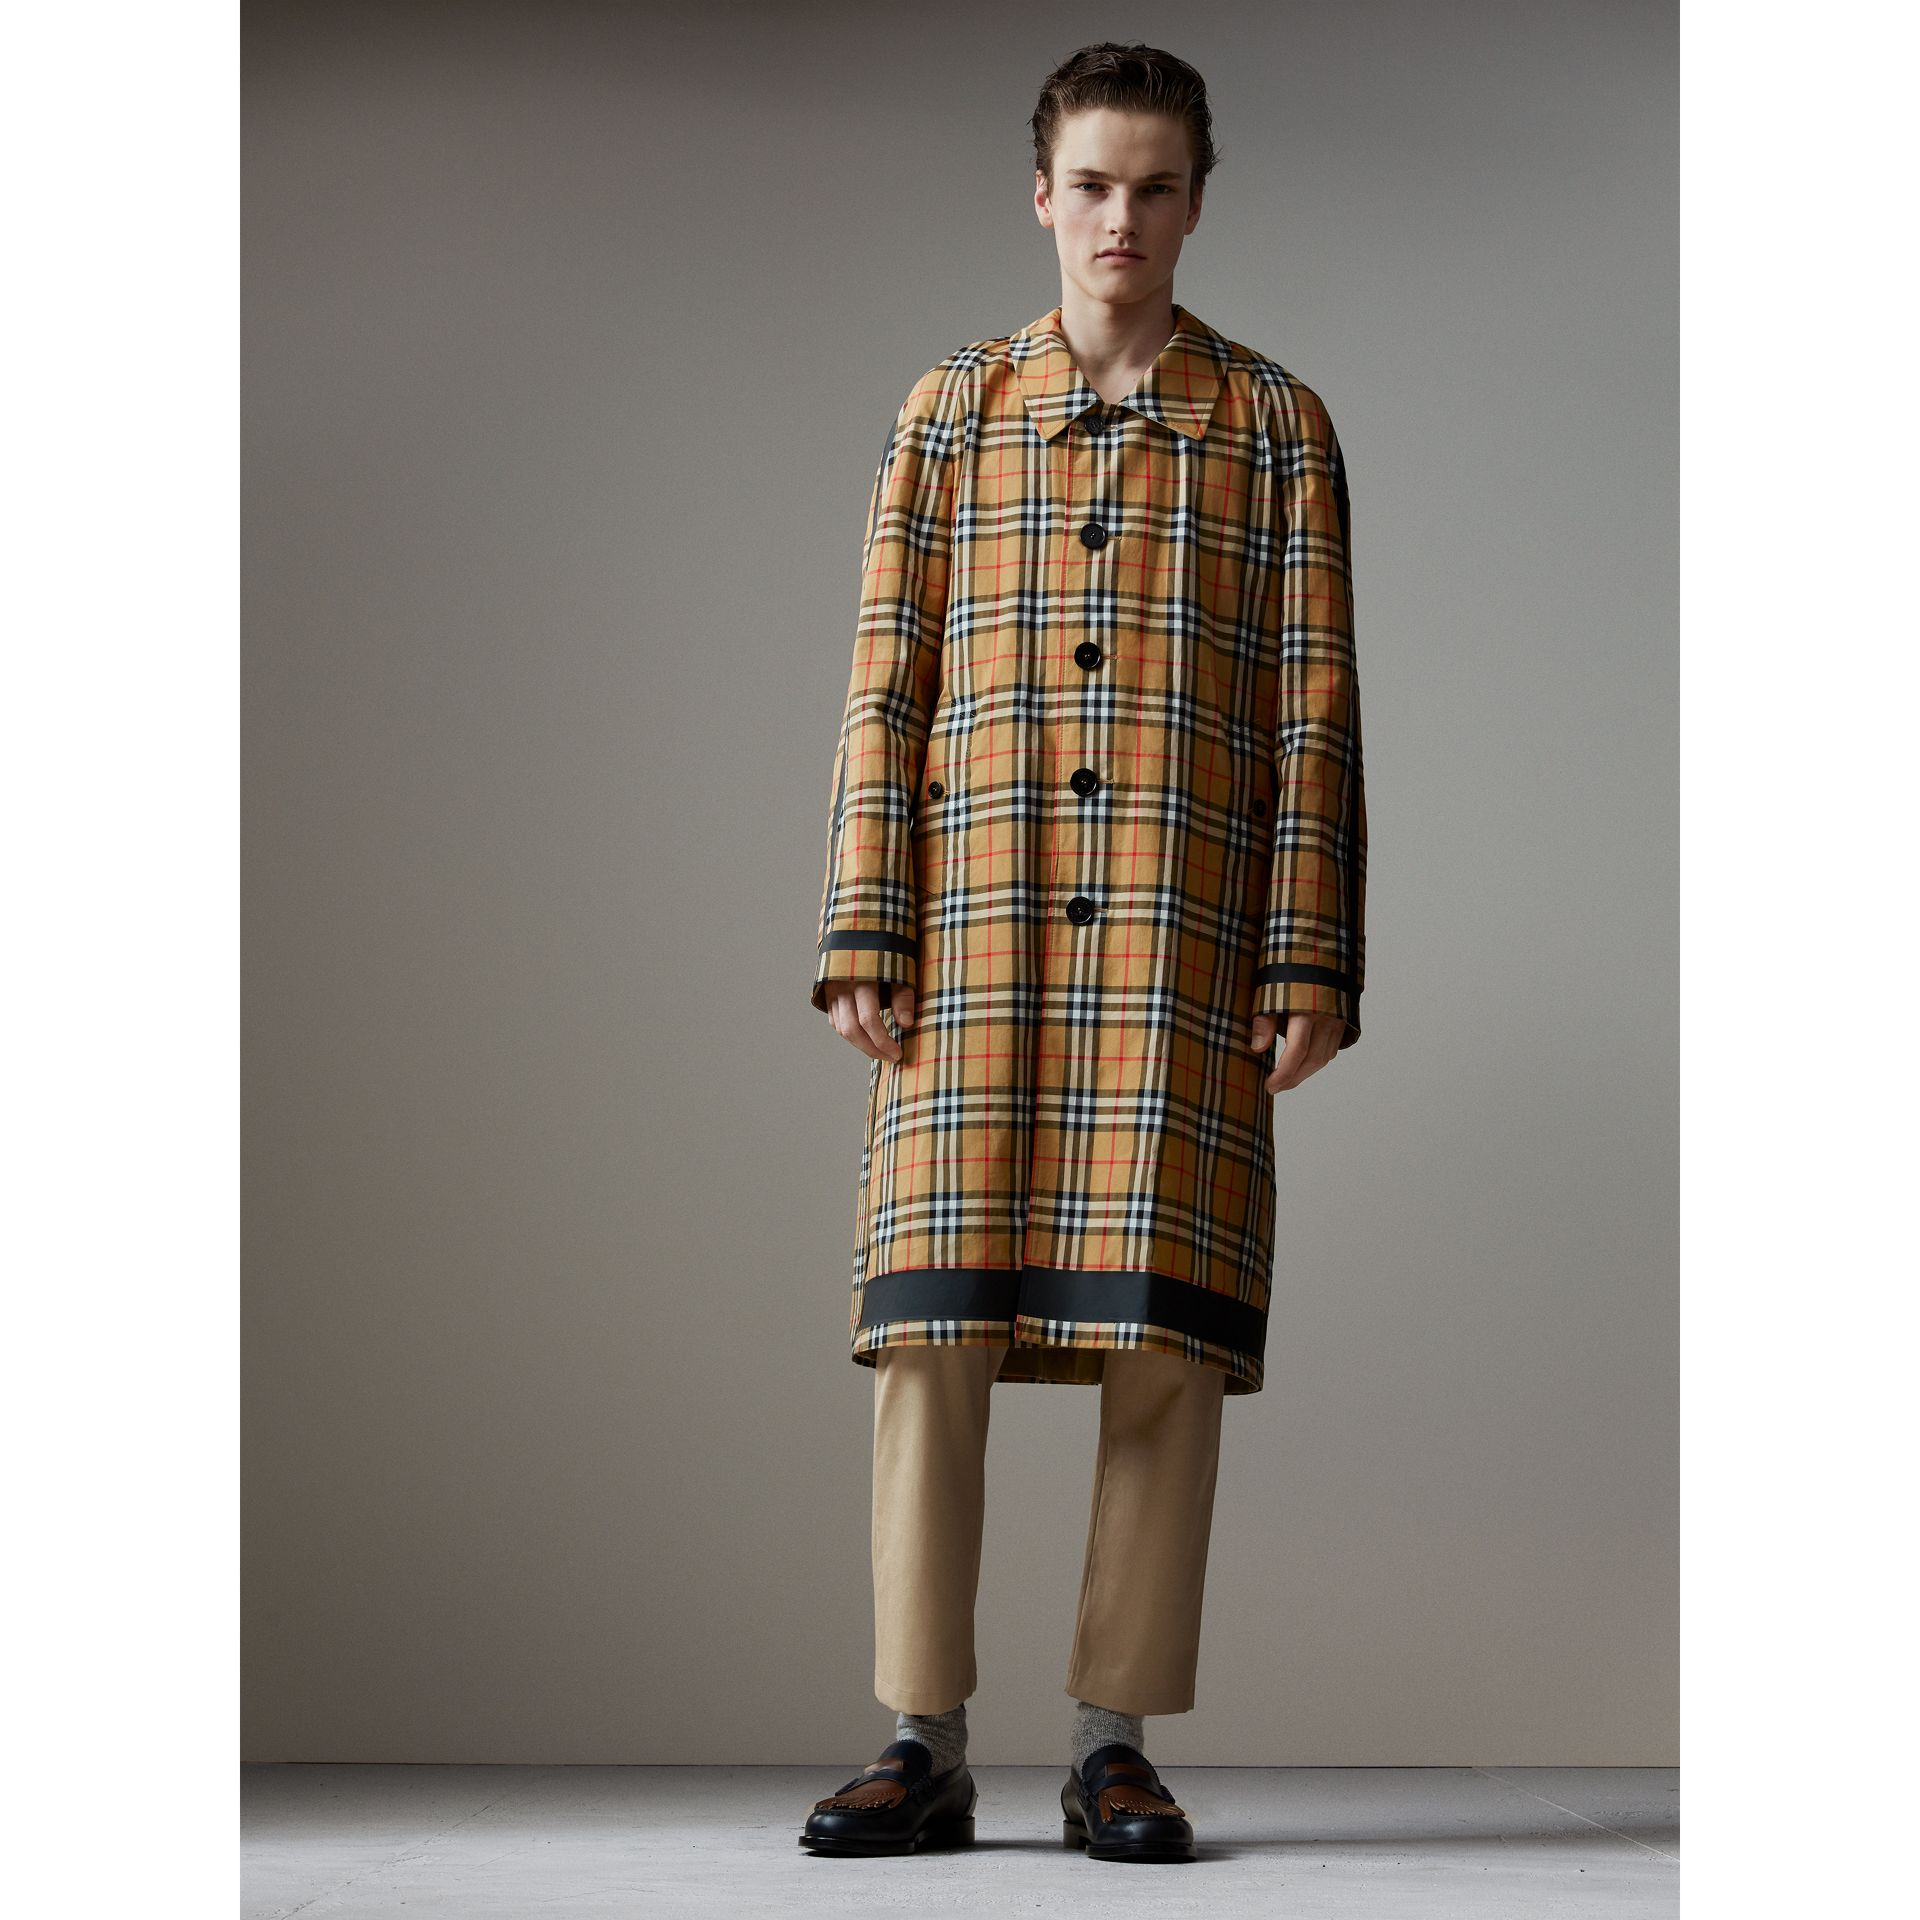 Paletot réversible en gabardine à motif Vintage check (Jaune Antique) - Homme | Burberry - photo de la galerie 1